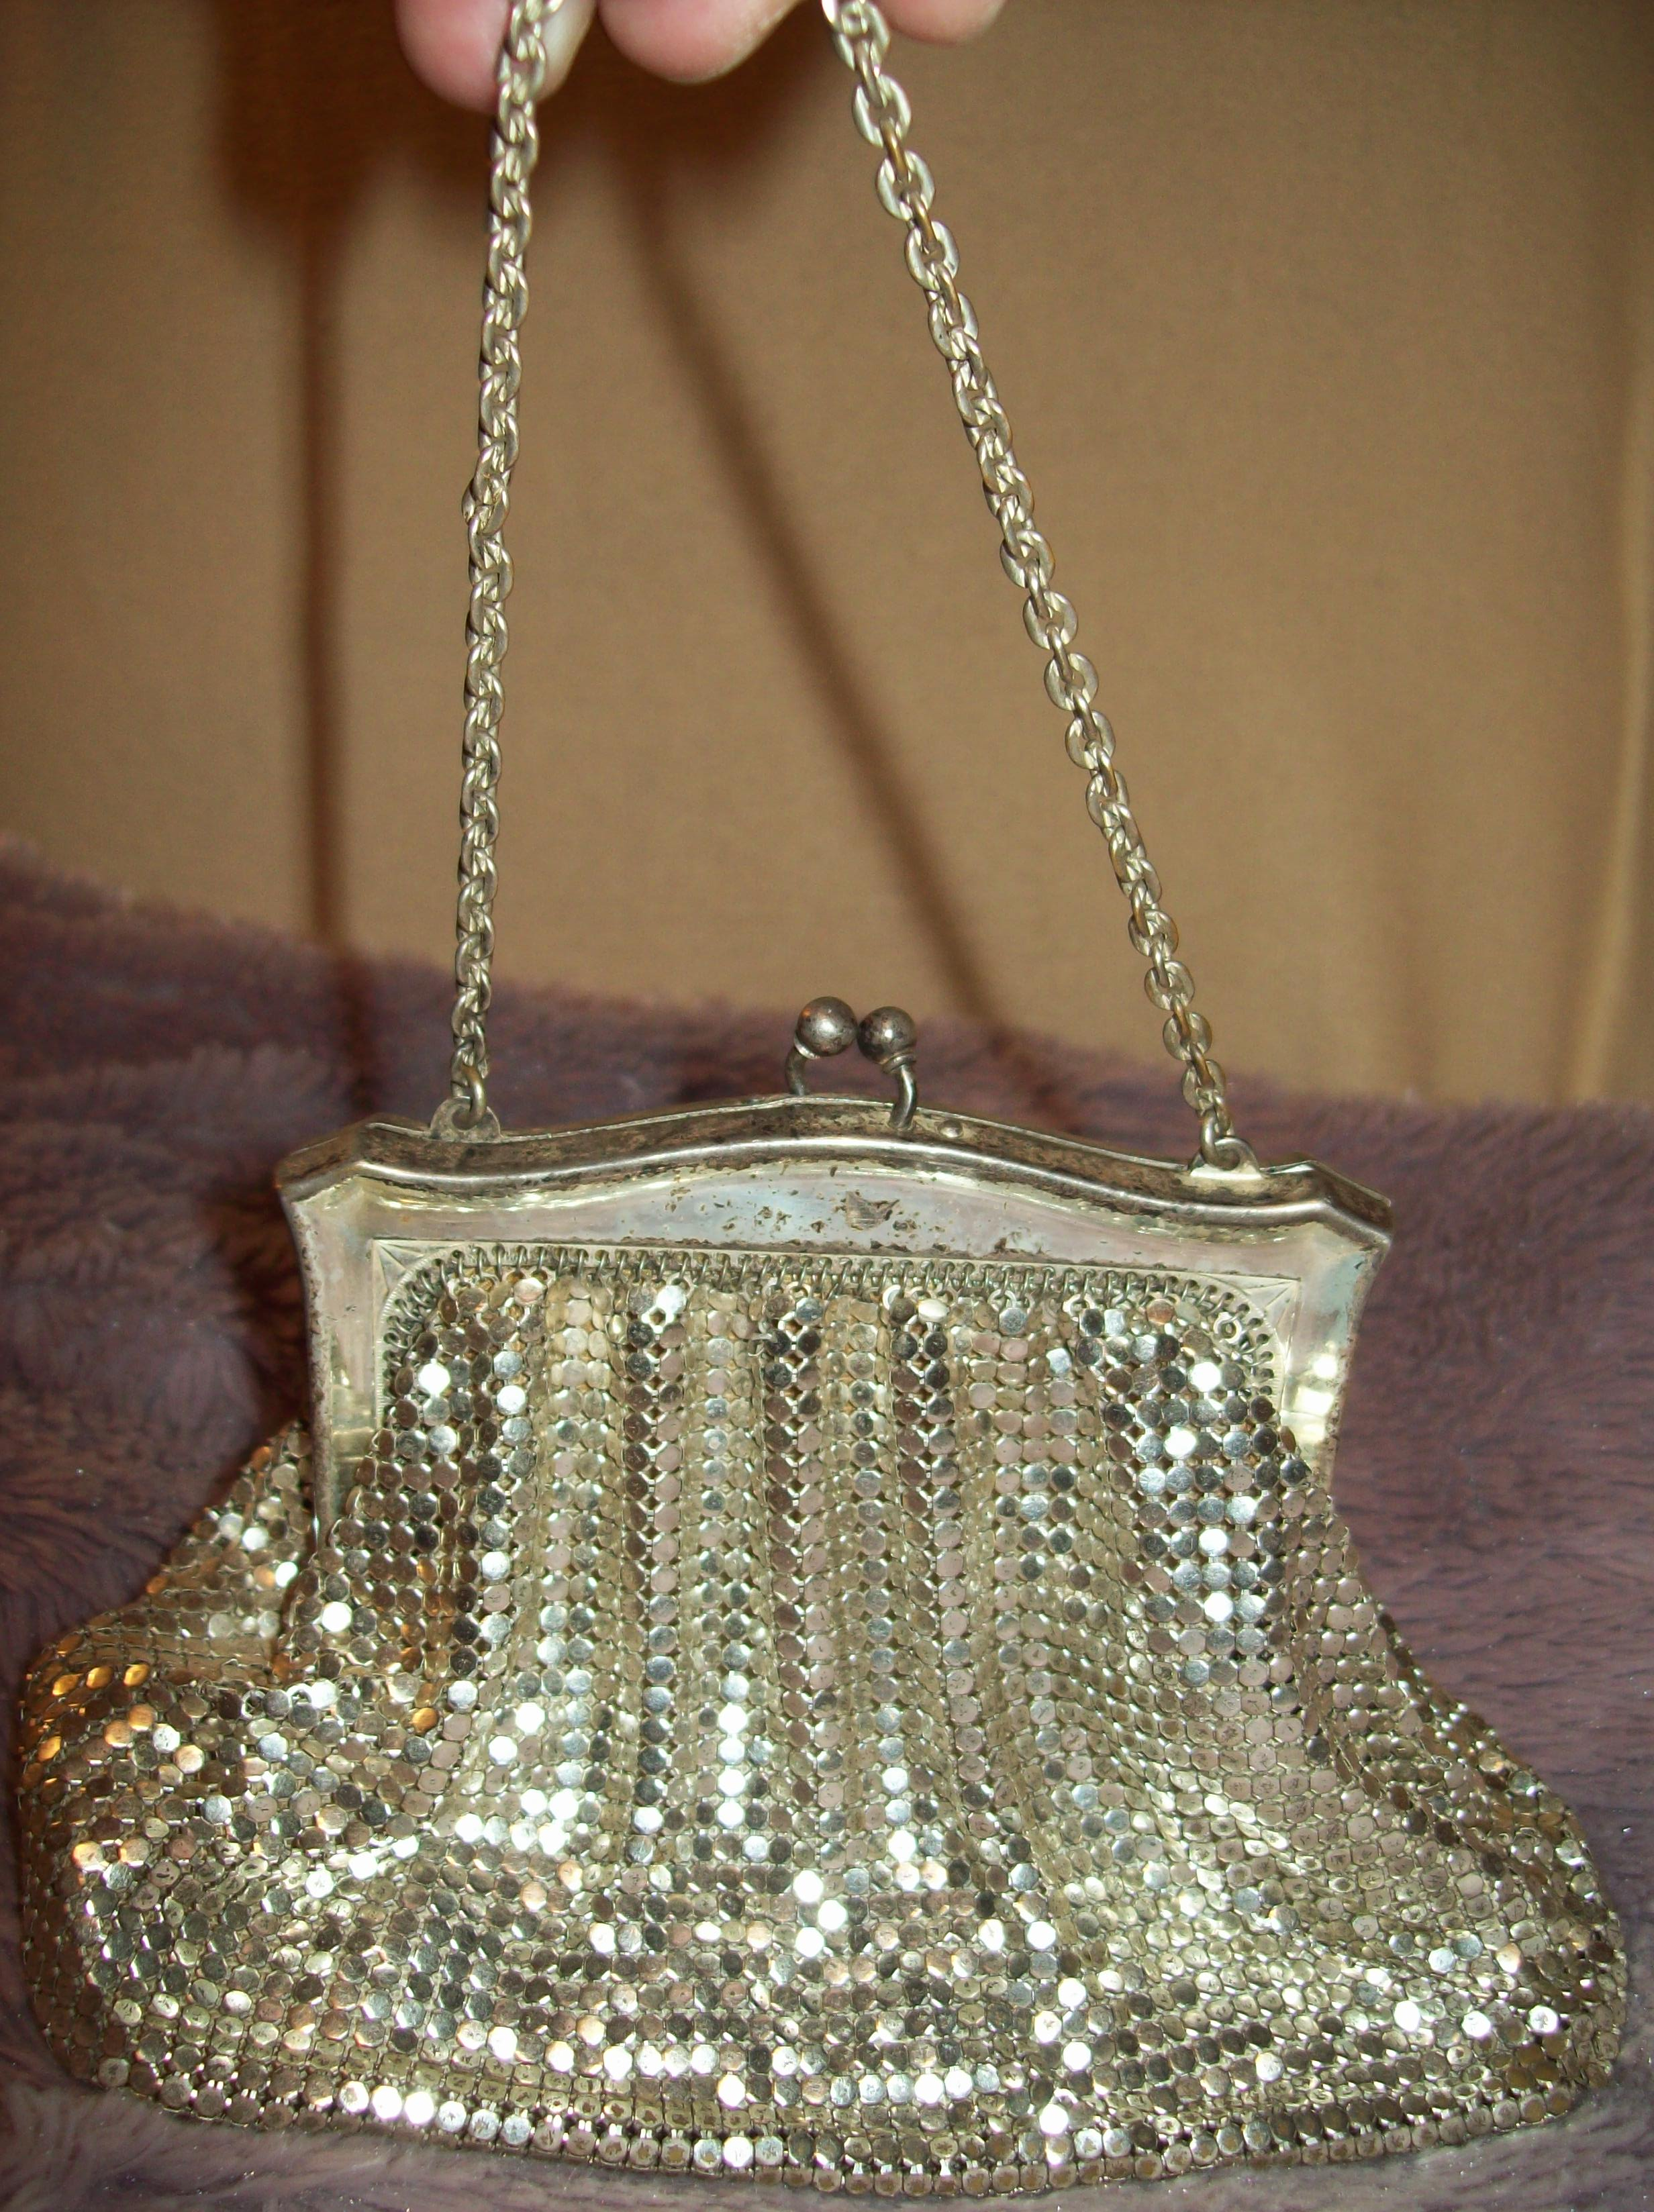 1920s Whiting and Davis Stirling Silver Mesh Purse